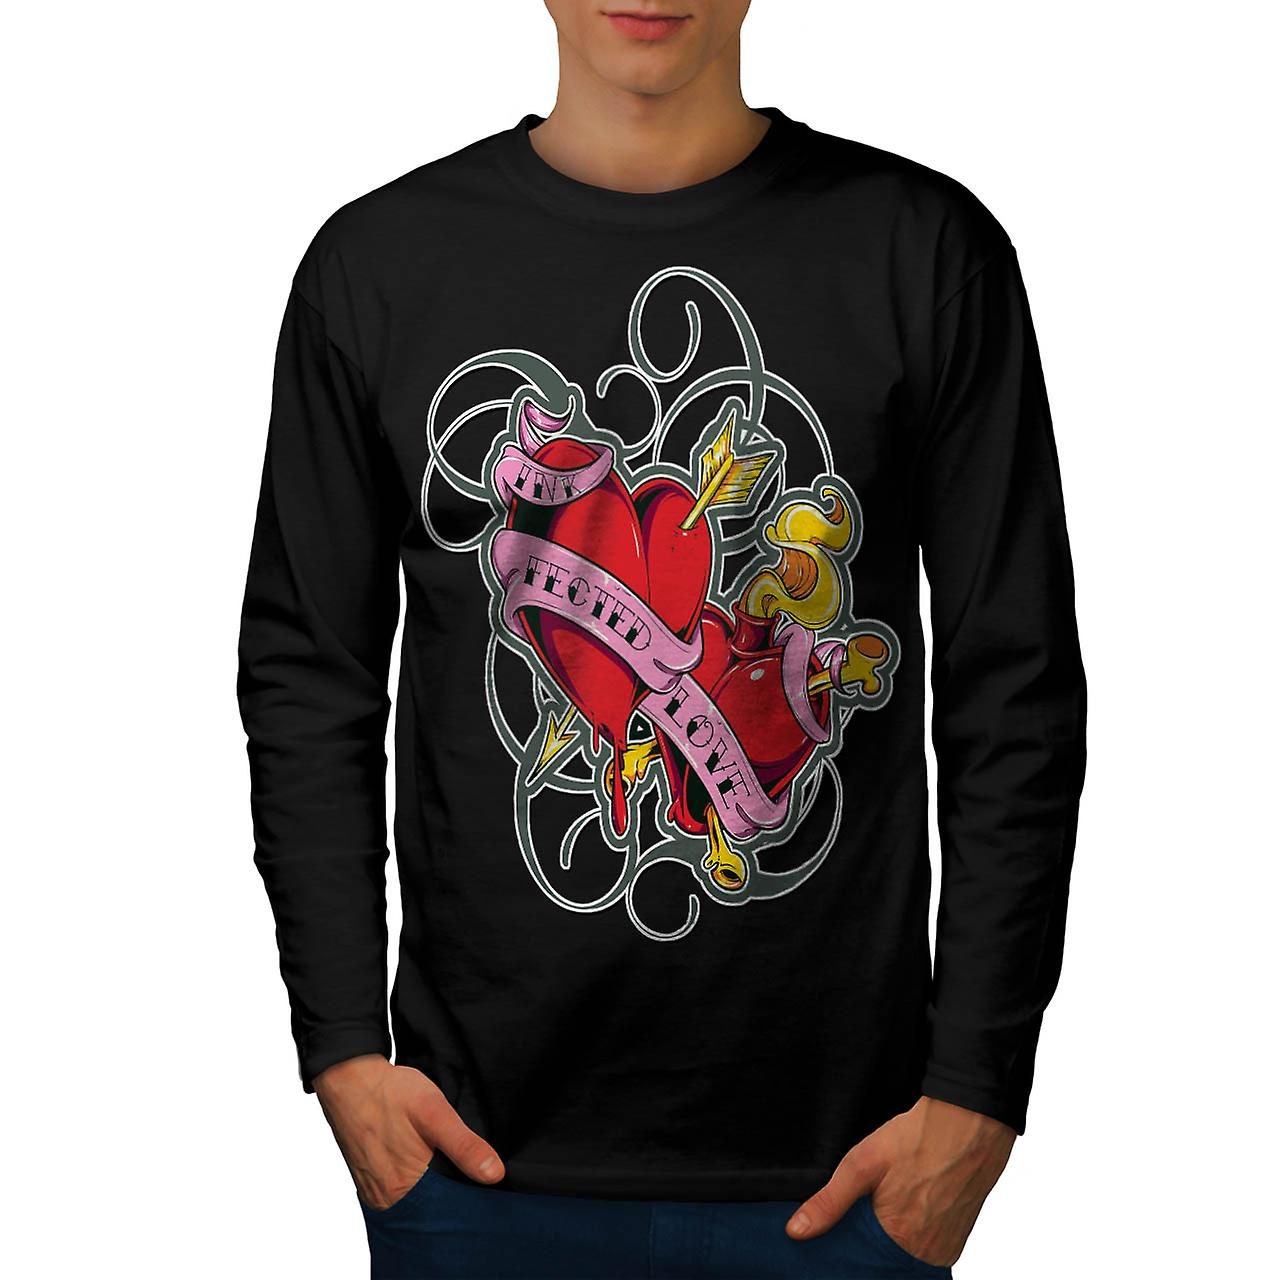 Infected Ink Love Tattoo Design Men Black Long Sleeve T-shirt | Wellcoda